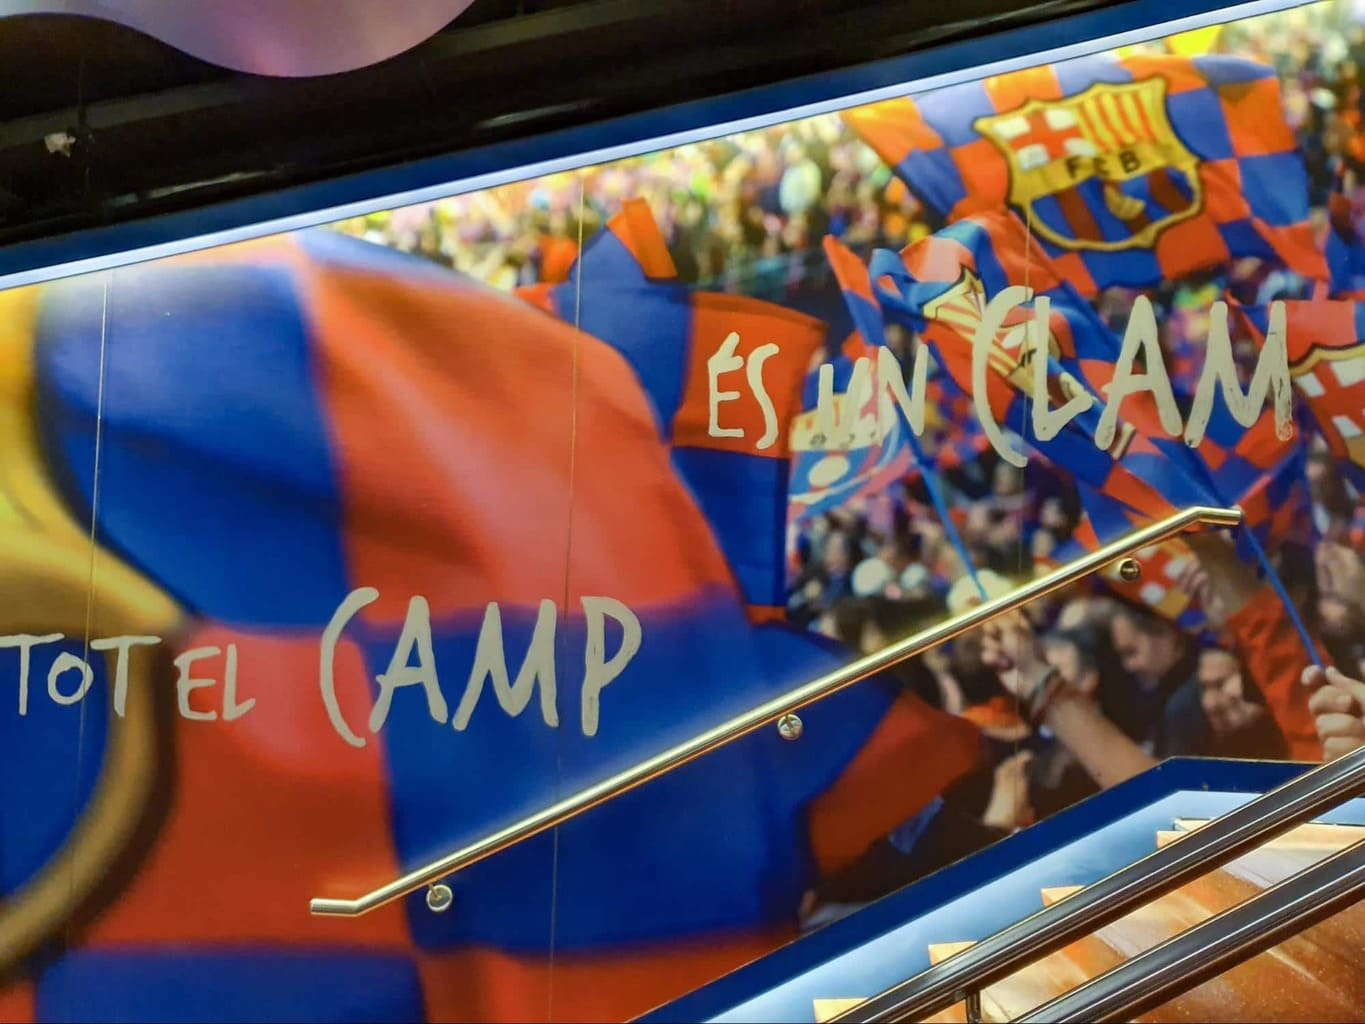 Barça's anthem written on the walls of the player's tunnel